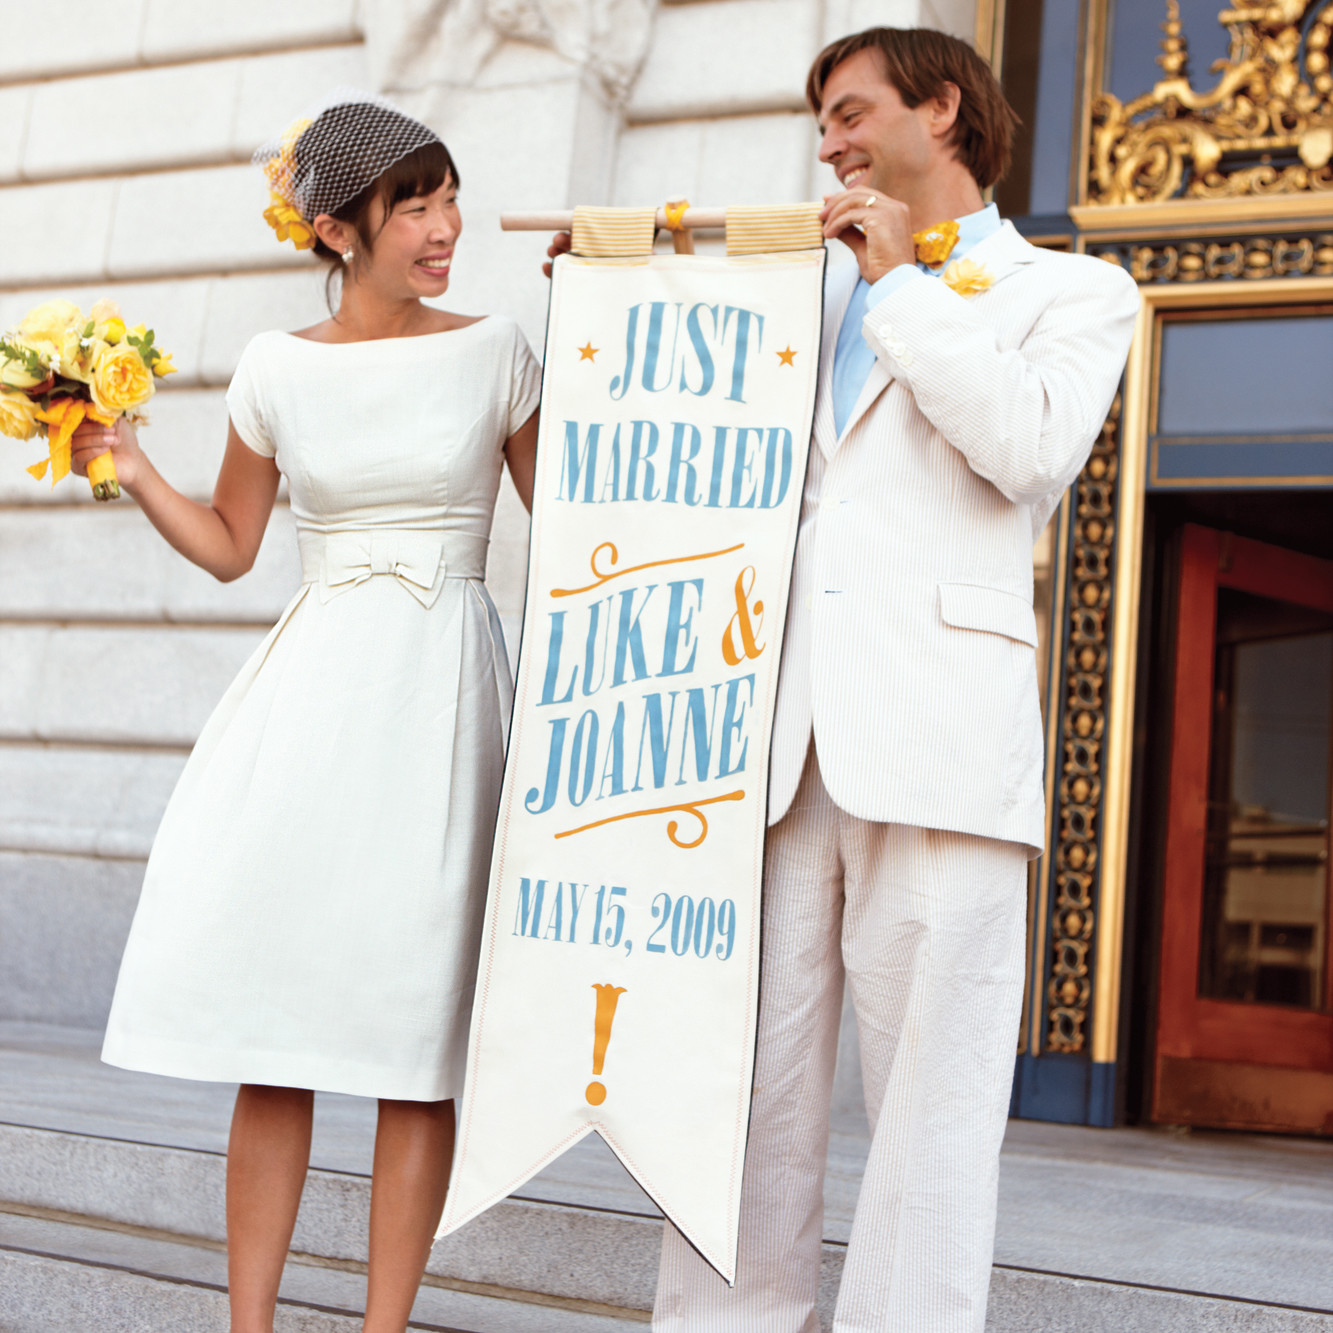 Marvelous 20 City Hall Wedding Dress Ideas For Making It Official In Style | Martha  Stewart Weddings